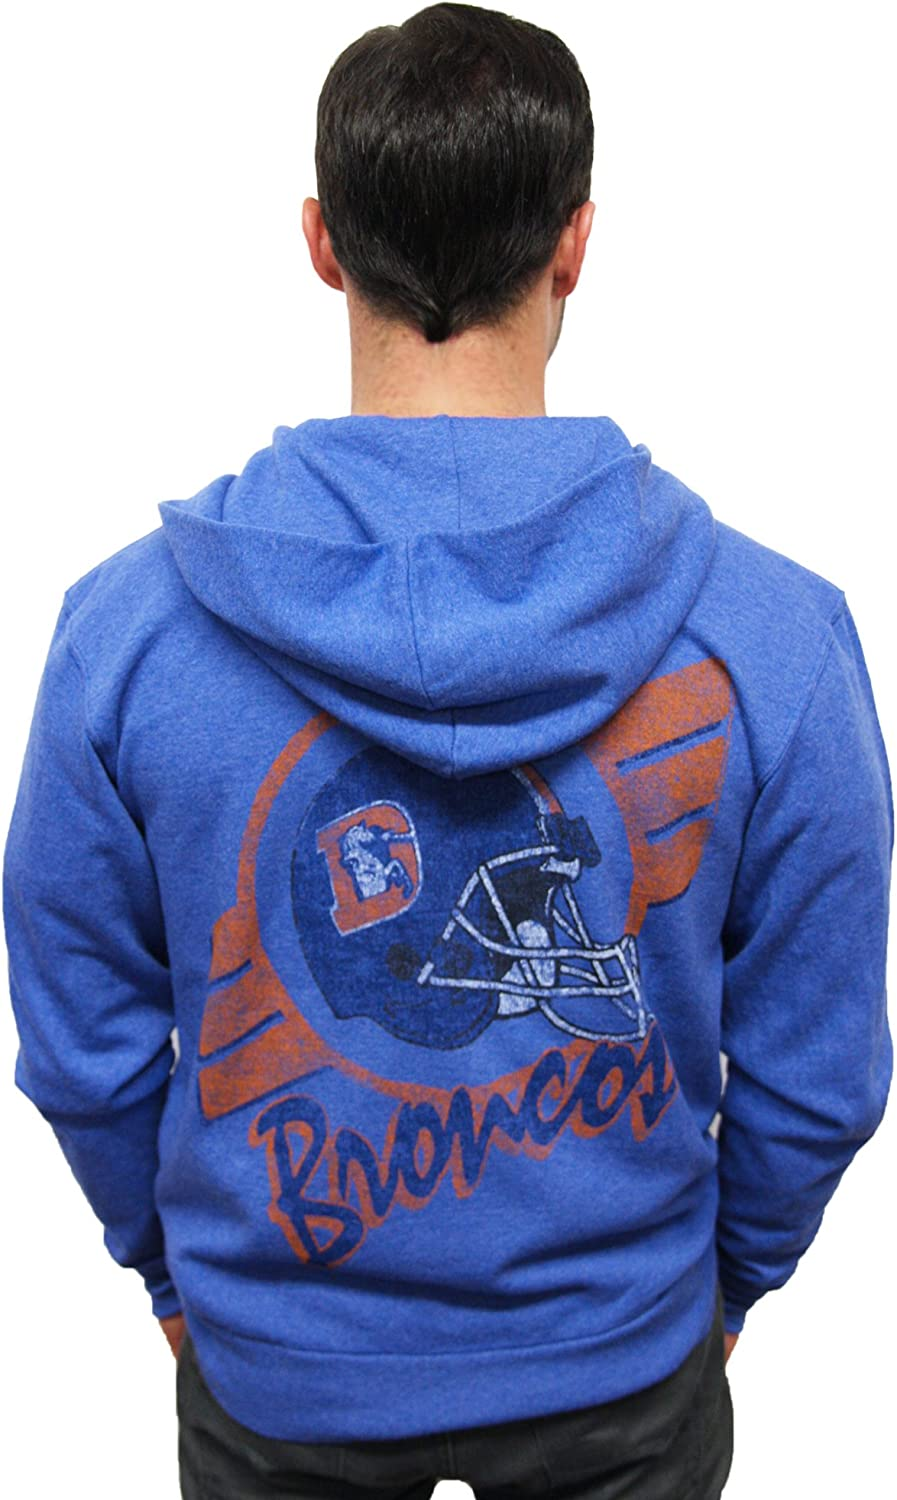 NFL Denver Broncos Vintage Hooded Sweatshirt Men's